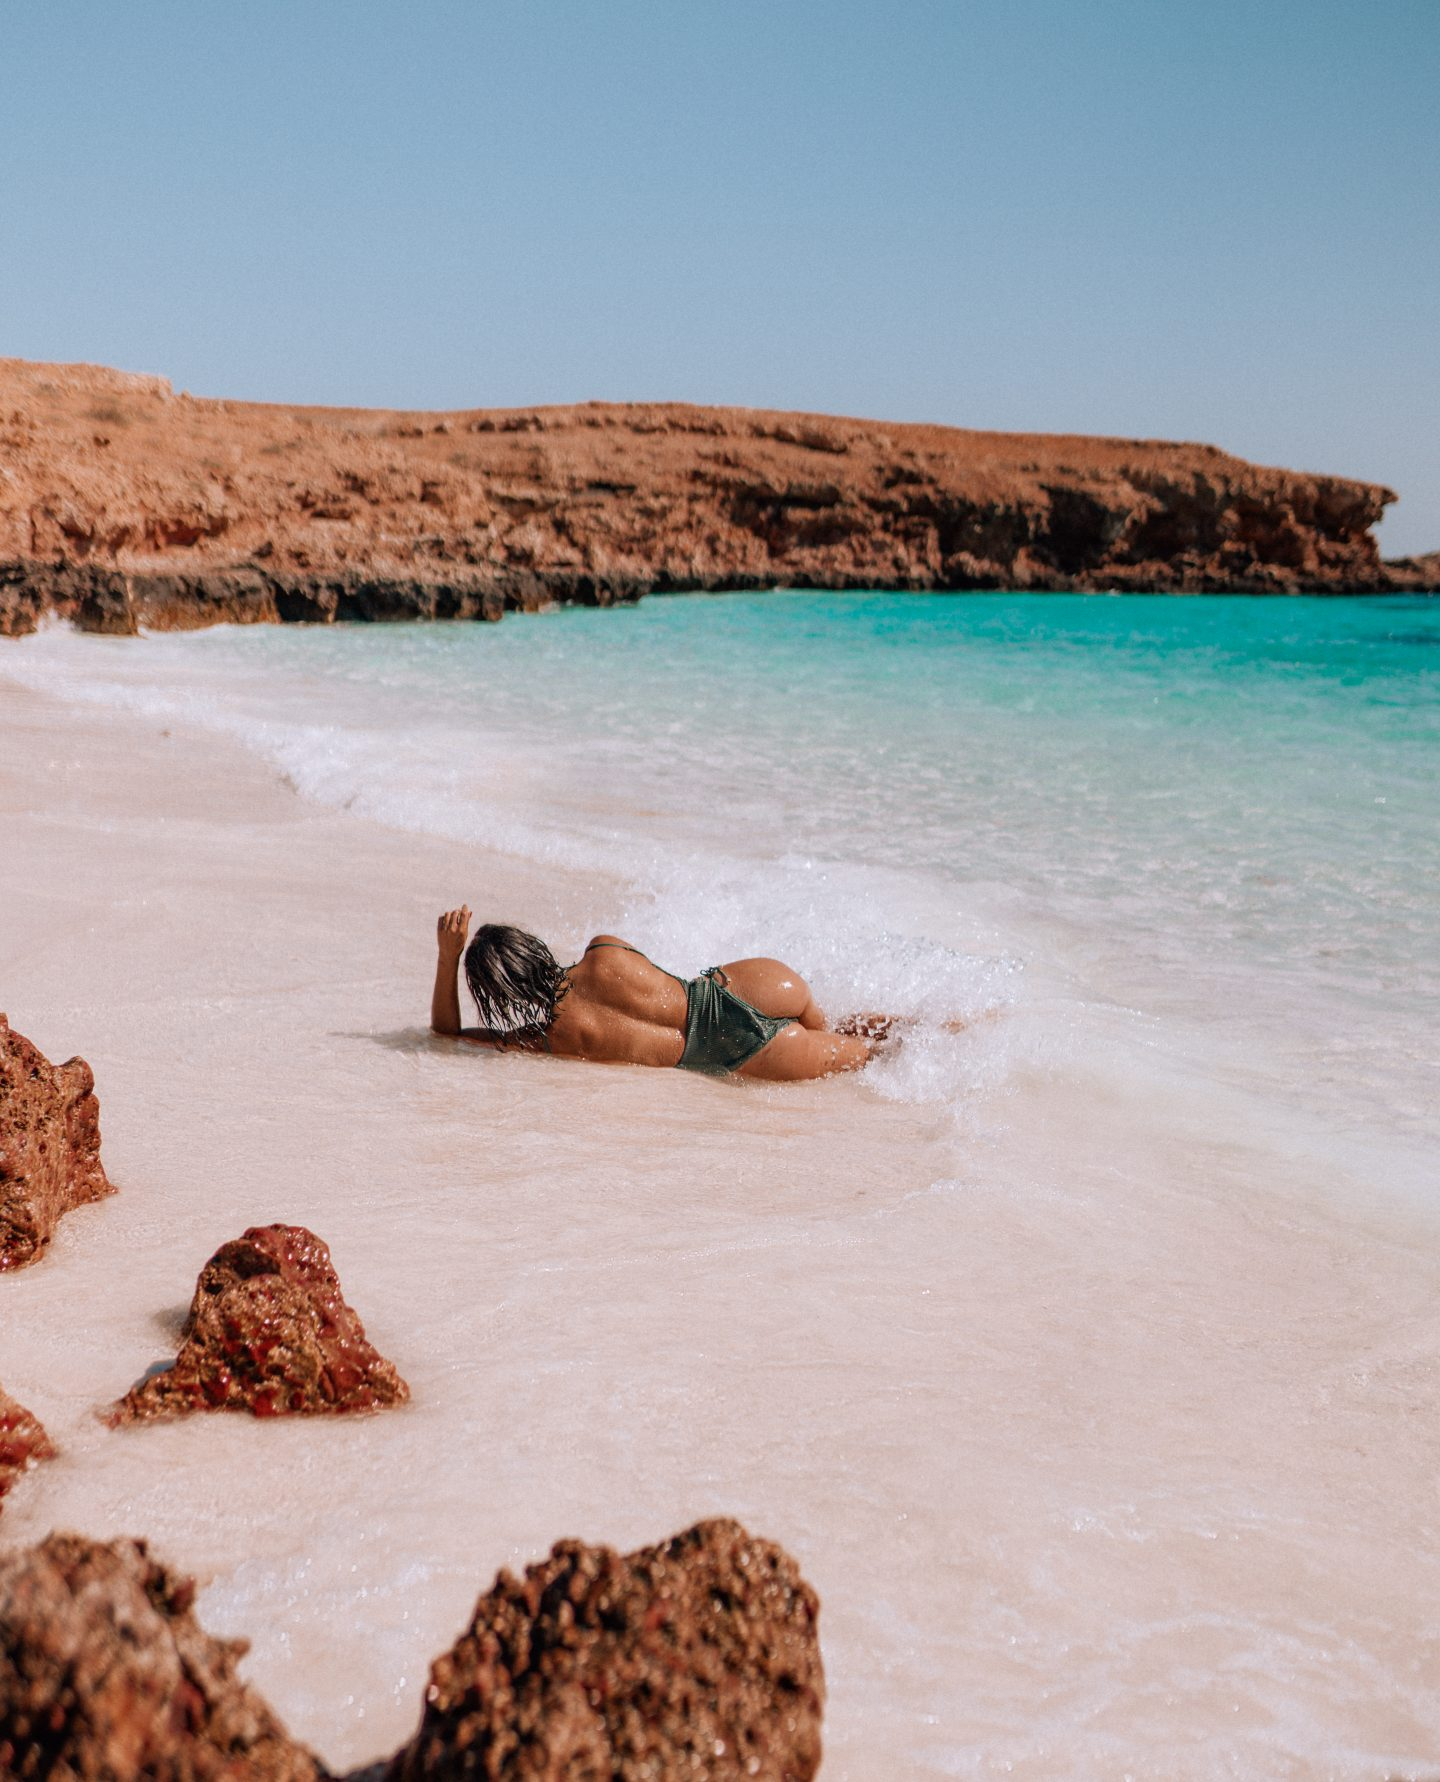 A woman on the beach in Oman at the Damaniyat Islands